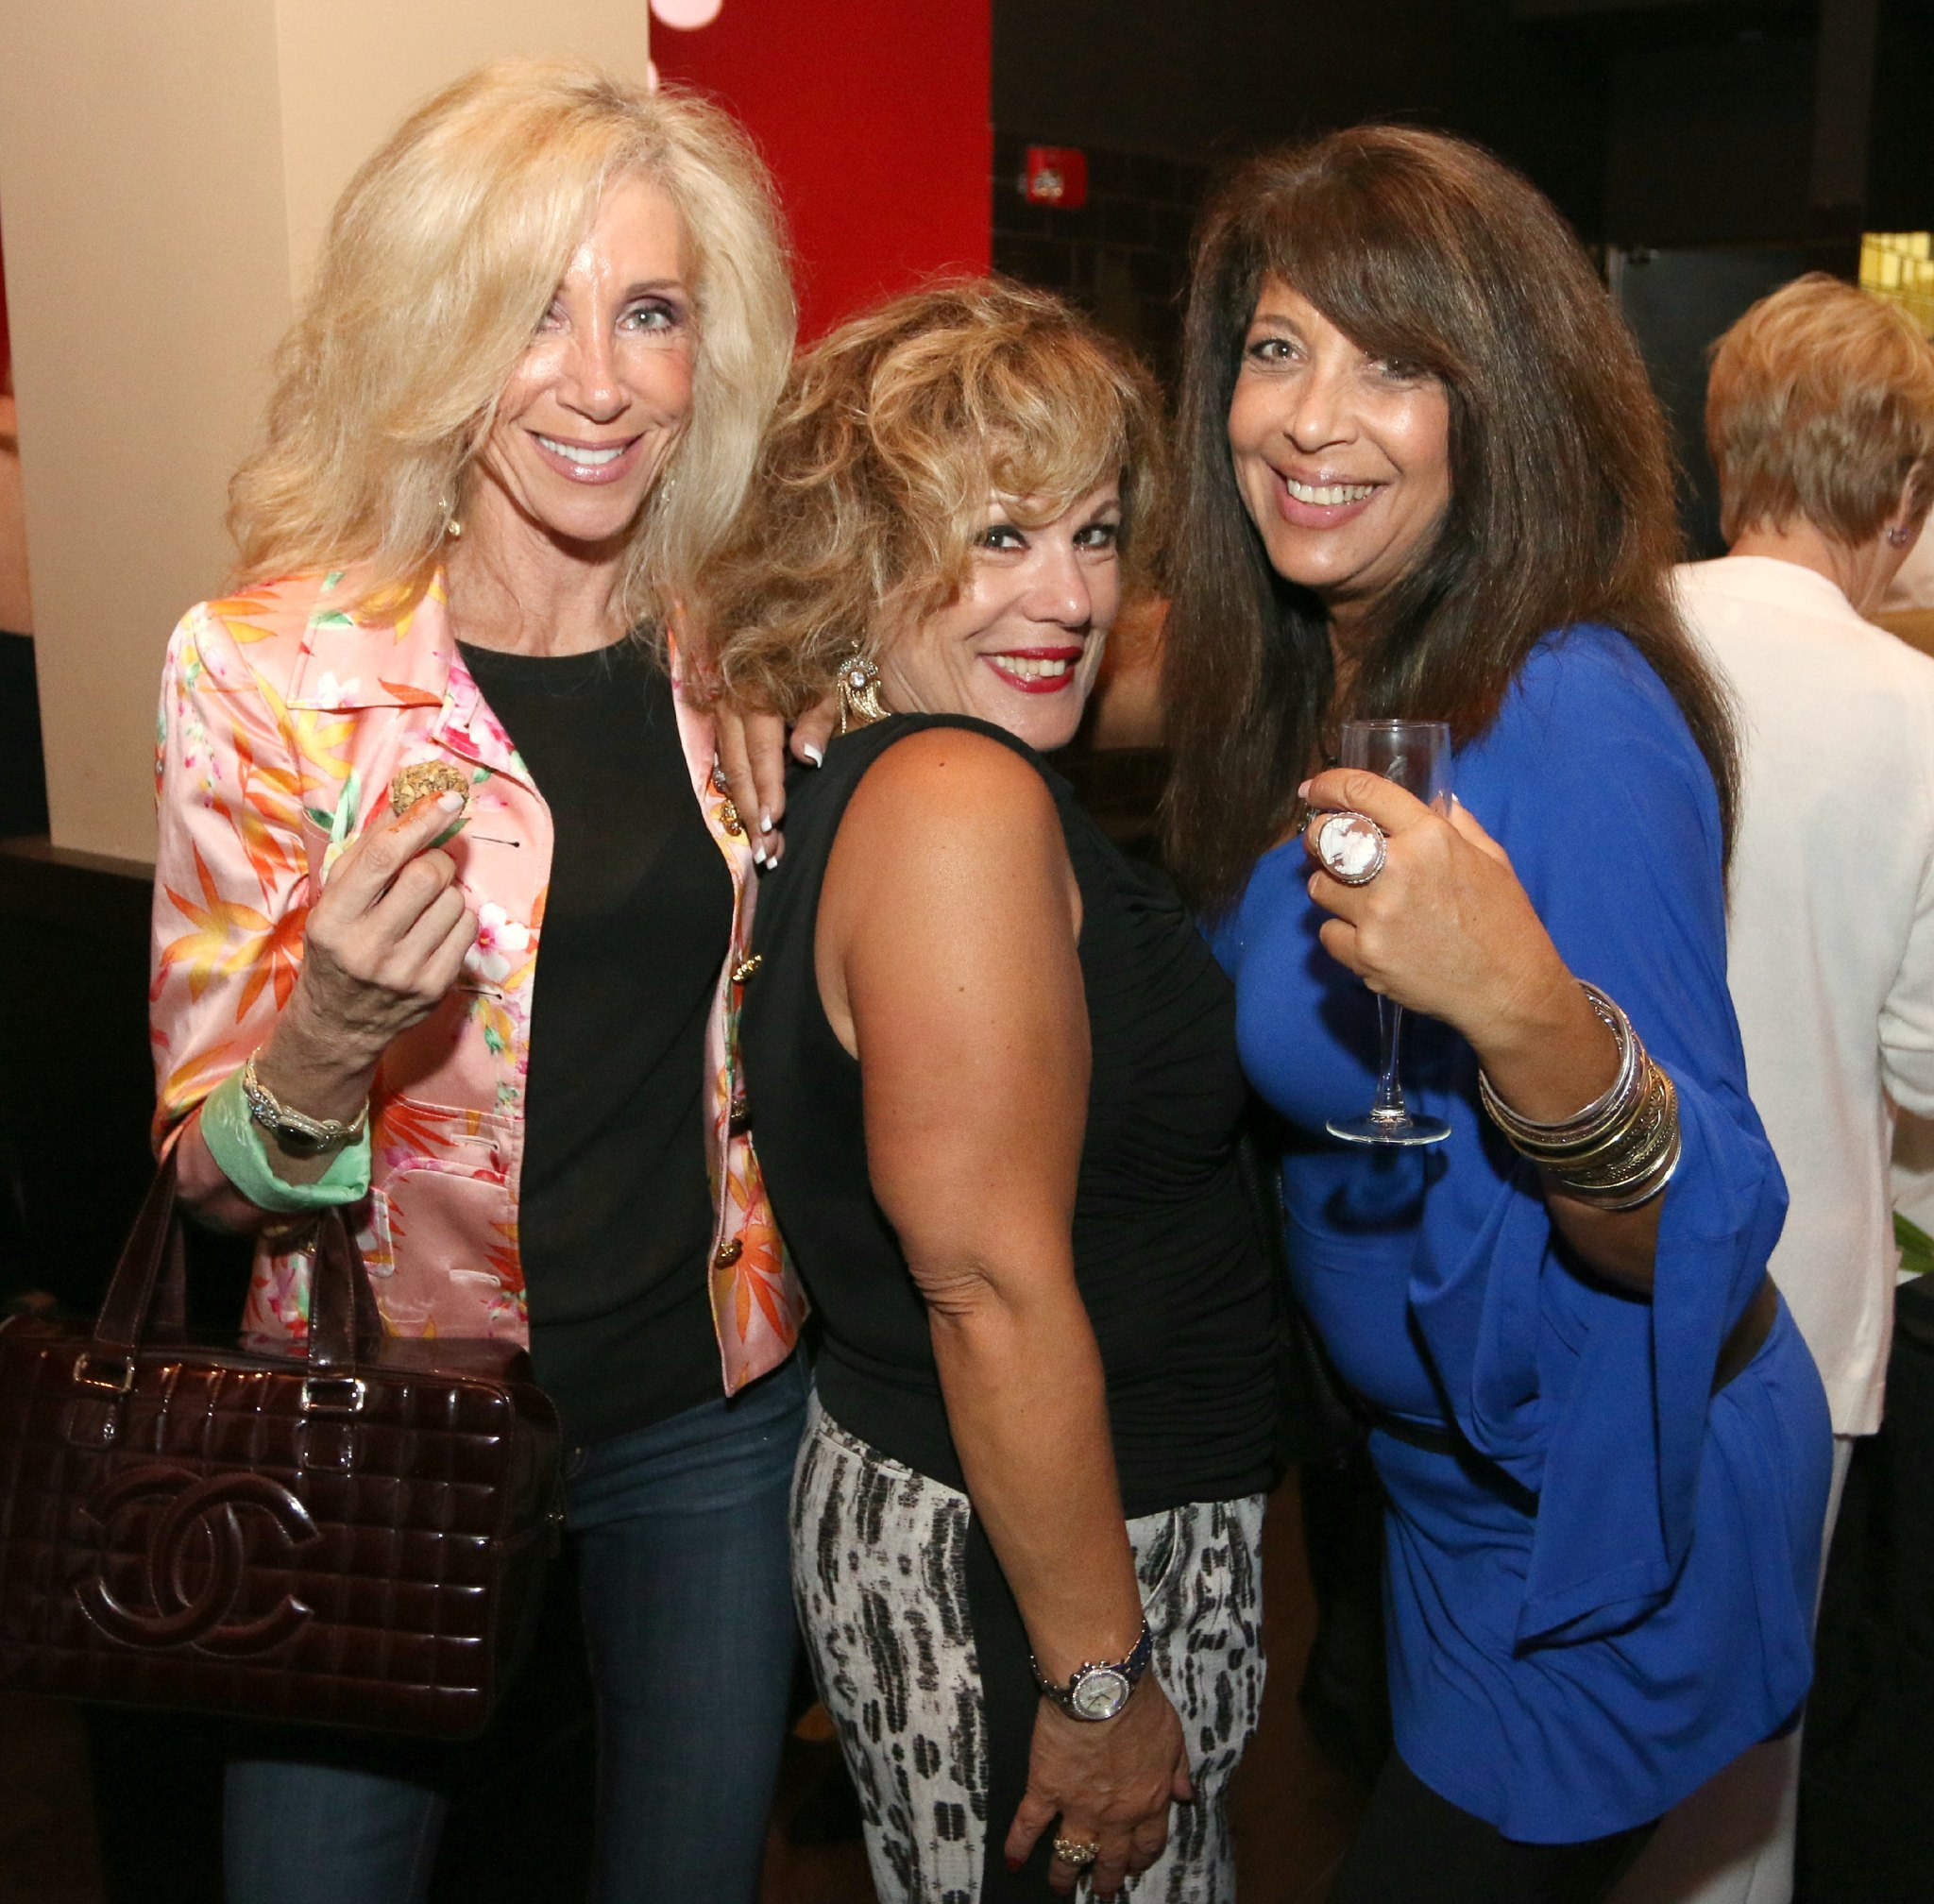 Jazziz Nightlife Grand Opening Party - Tweety Donner, Ester Gelfand and Bonnie Sohn